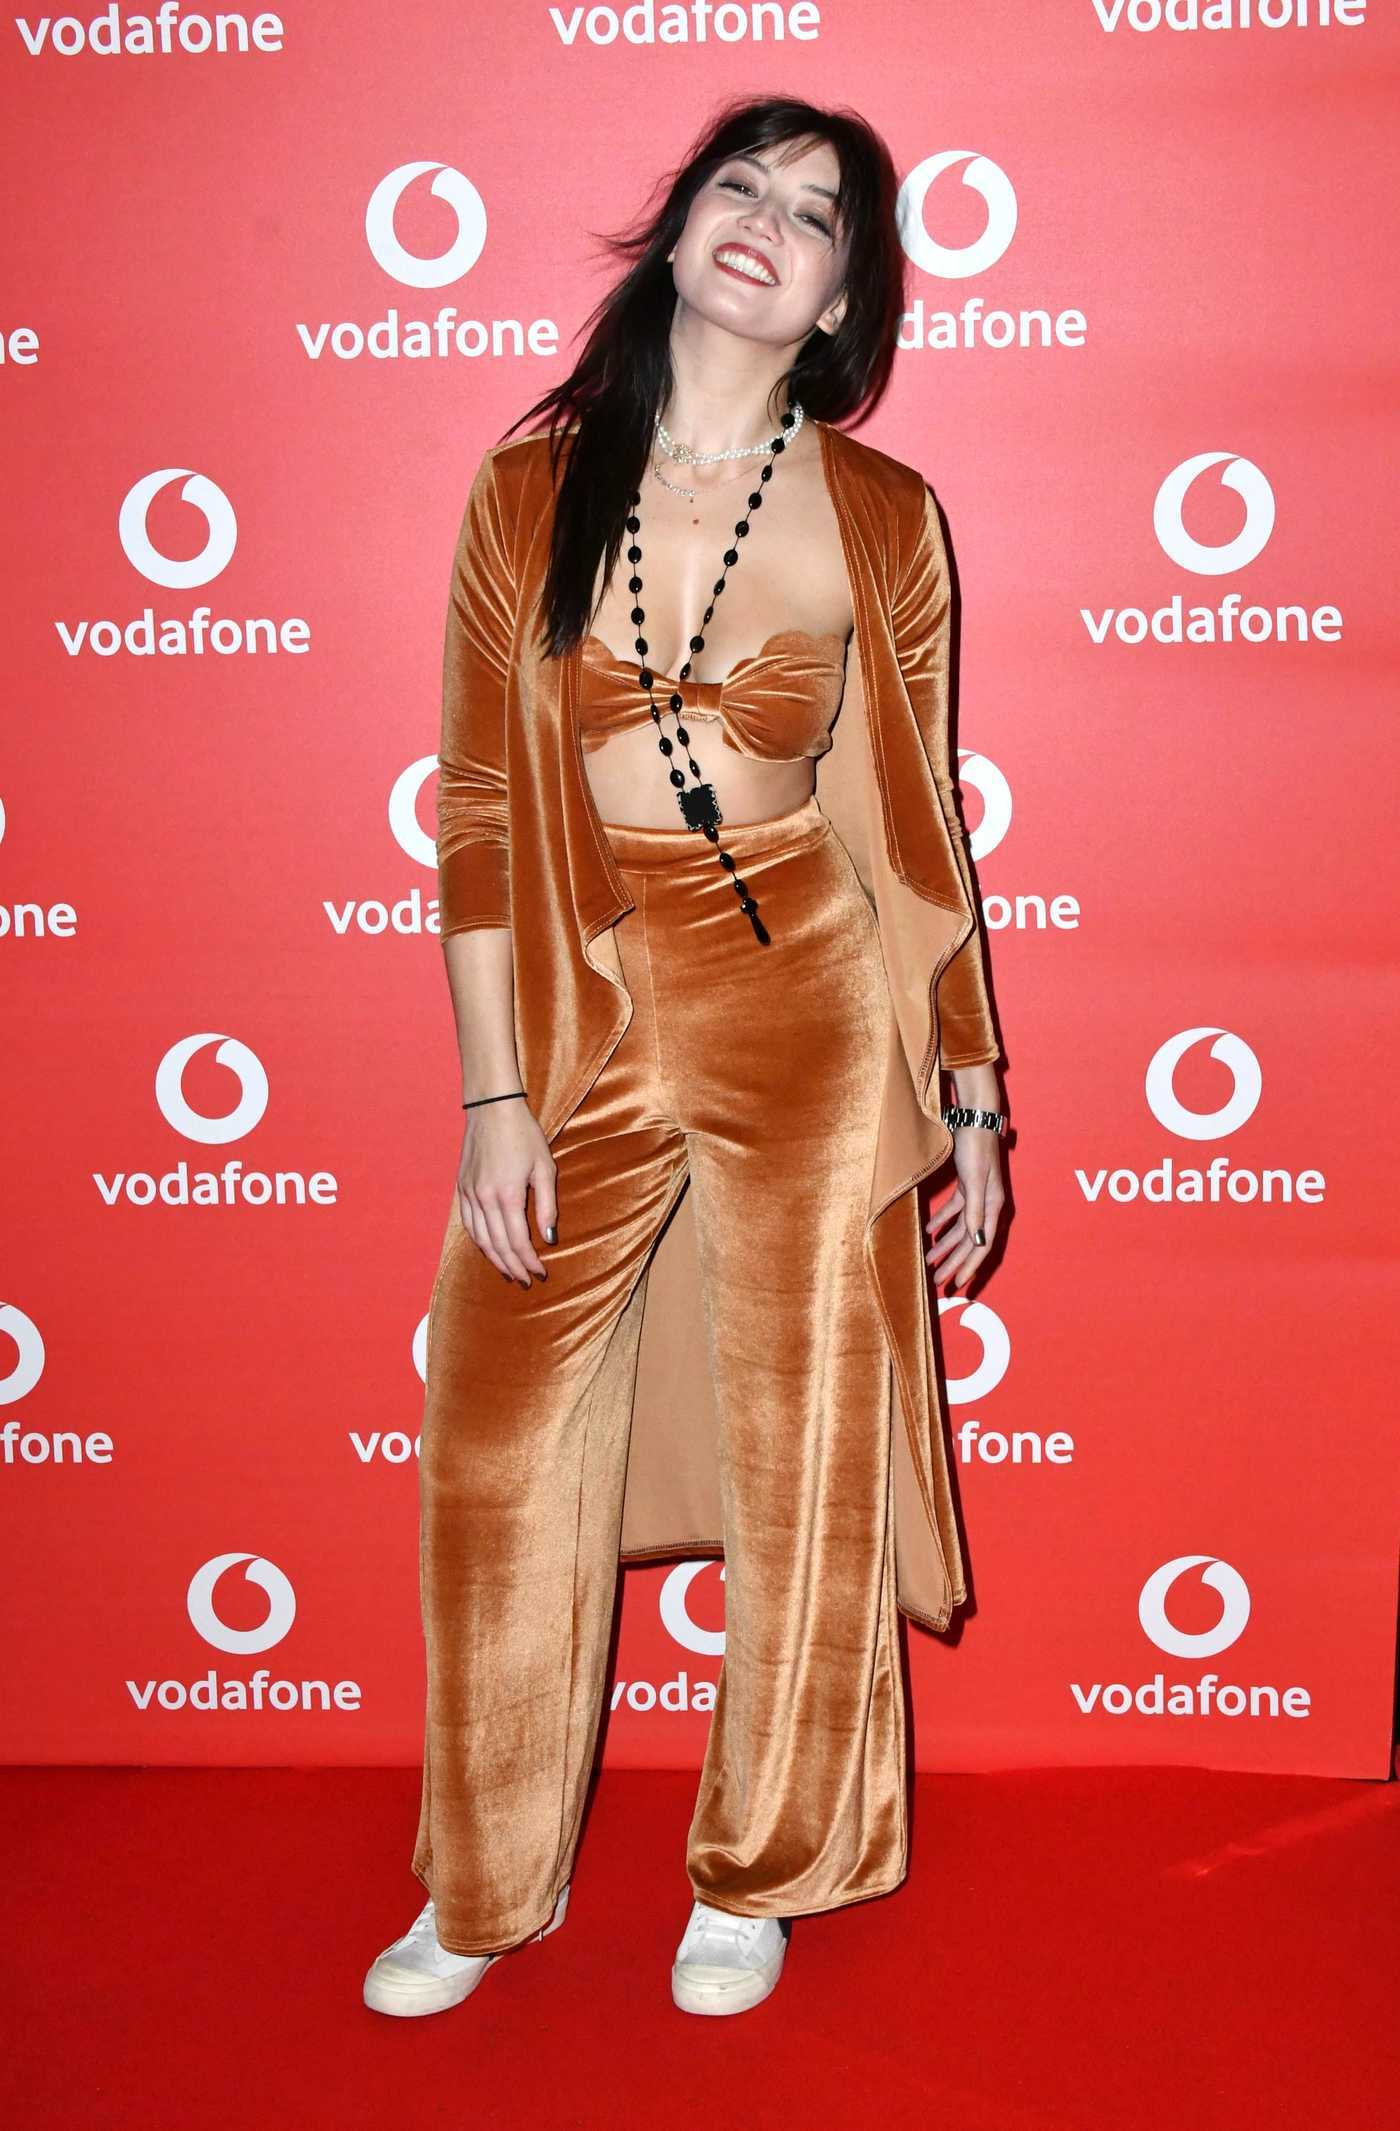 Daisy Lowe Attends the Vodafone Passes Launch in London 11/01/2017